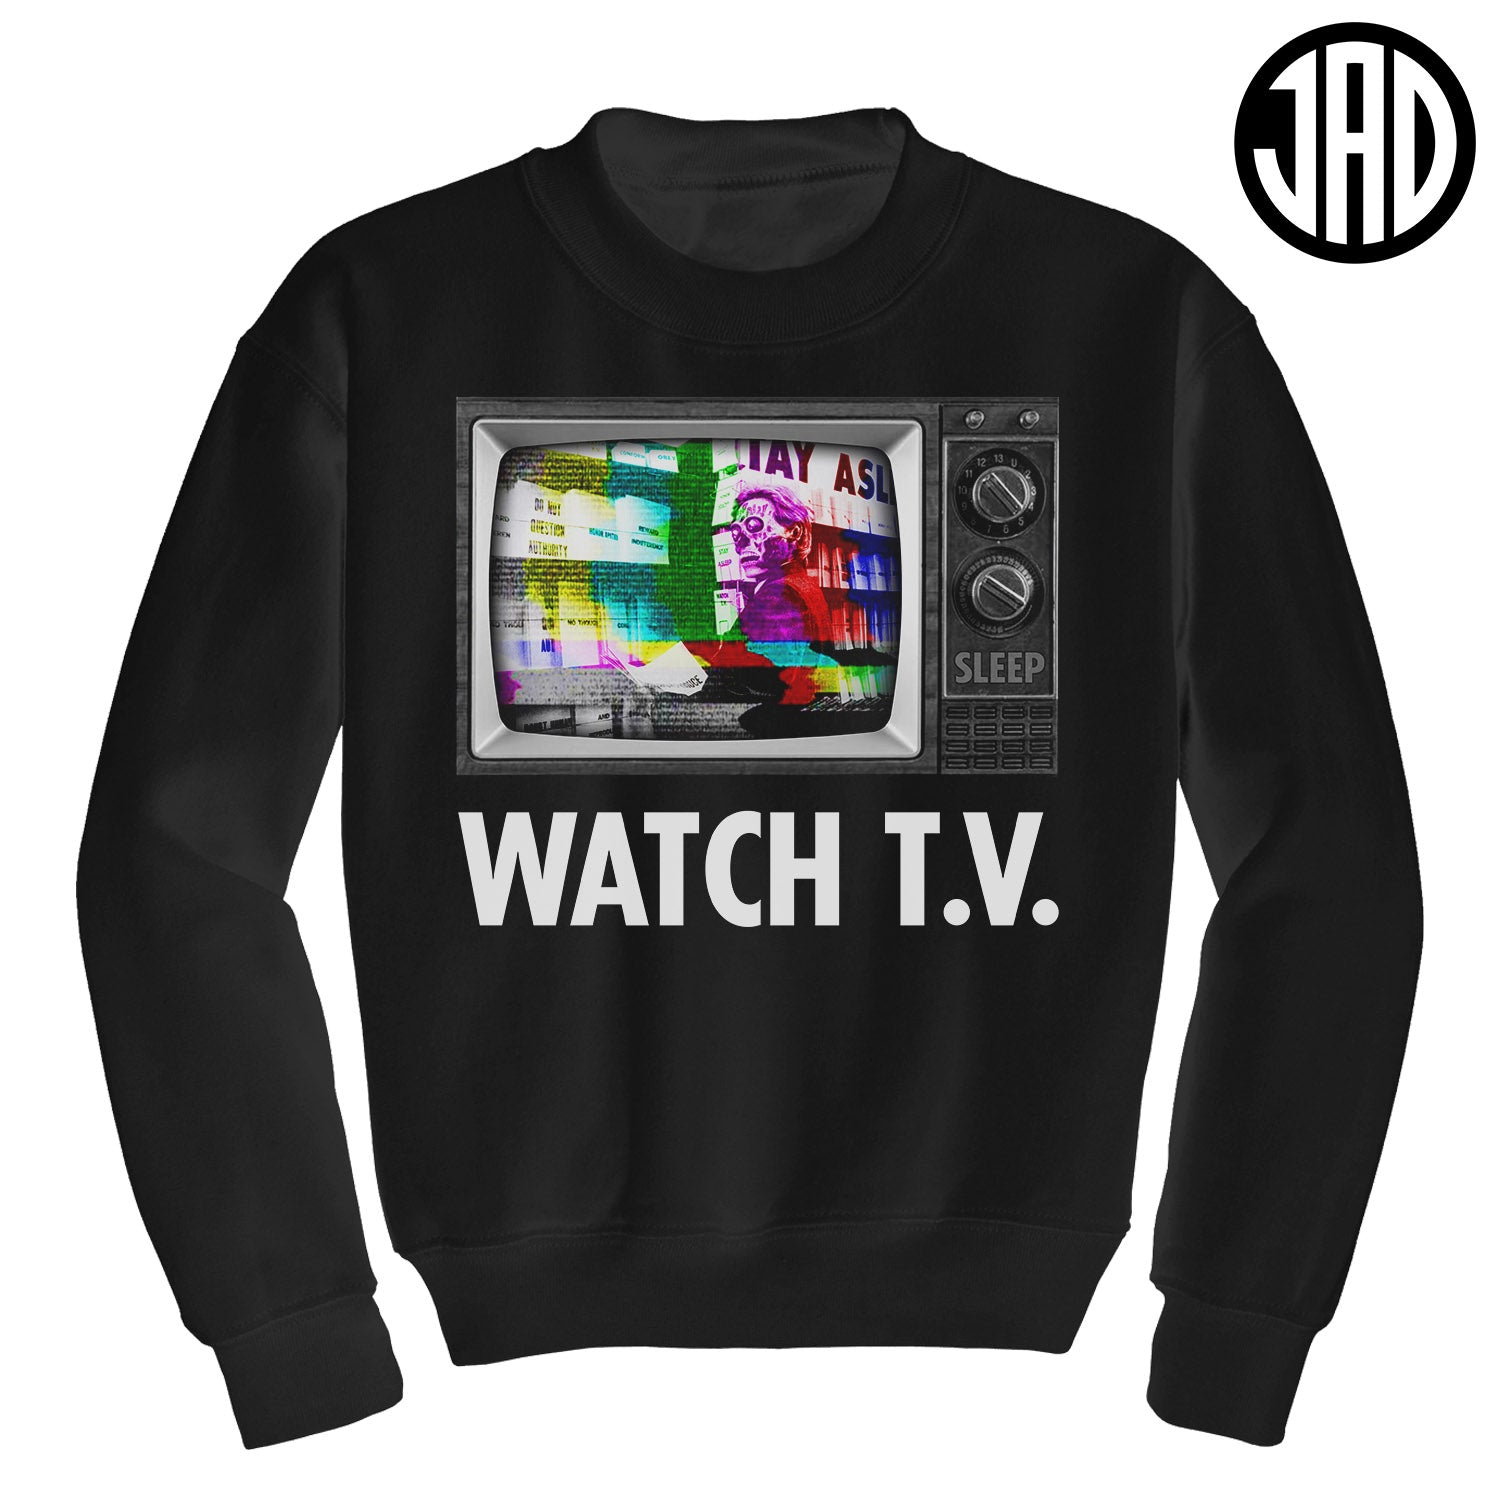 Watch TV - Crewneck Sweater